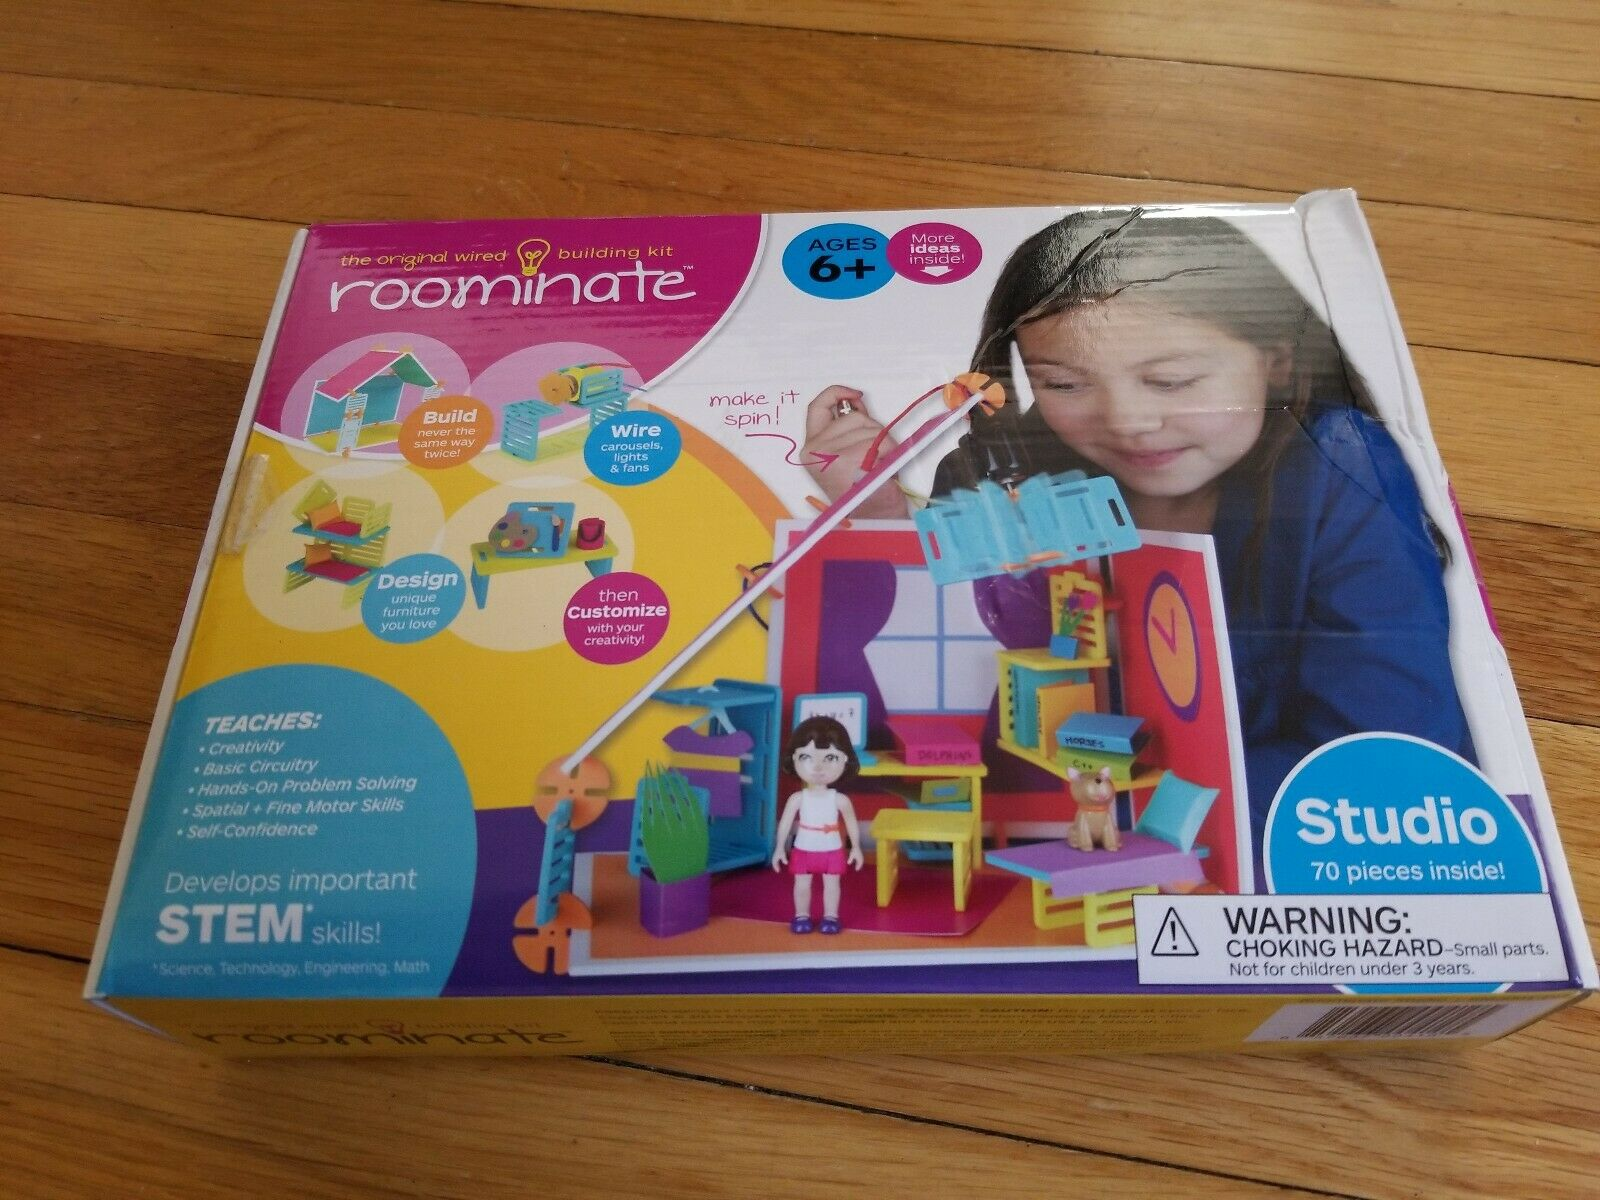 Roominate Wired Wired Wired RV Van & Studio Apt Building Kit Modular Pieces STEM Skills Sets cb4eb1